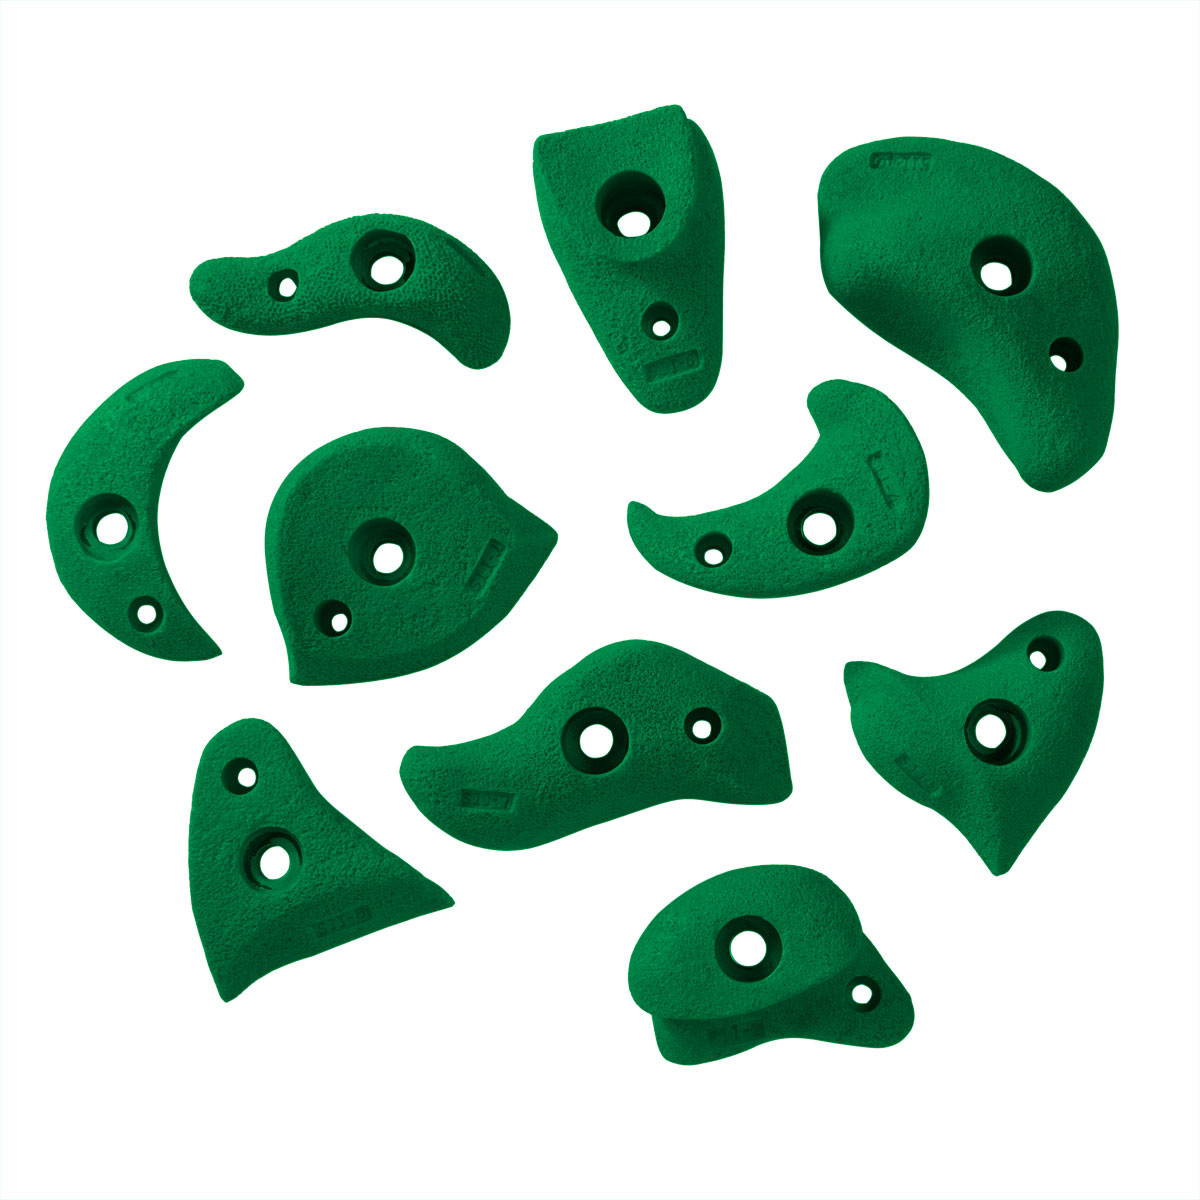 Composite Sand Hand Holds - Green